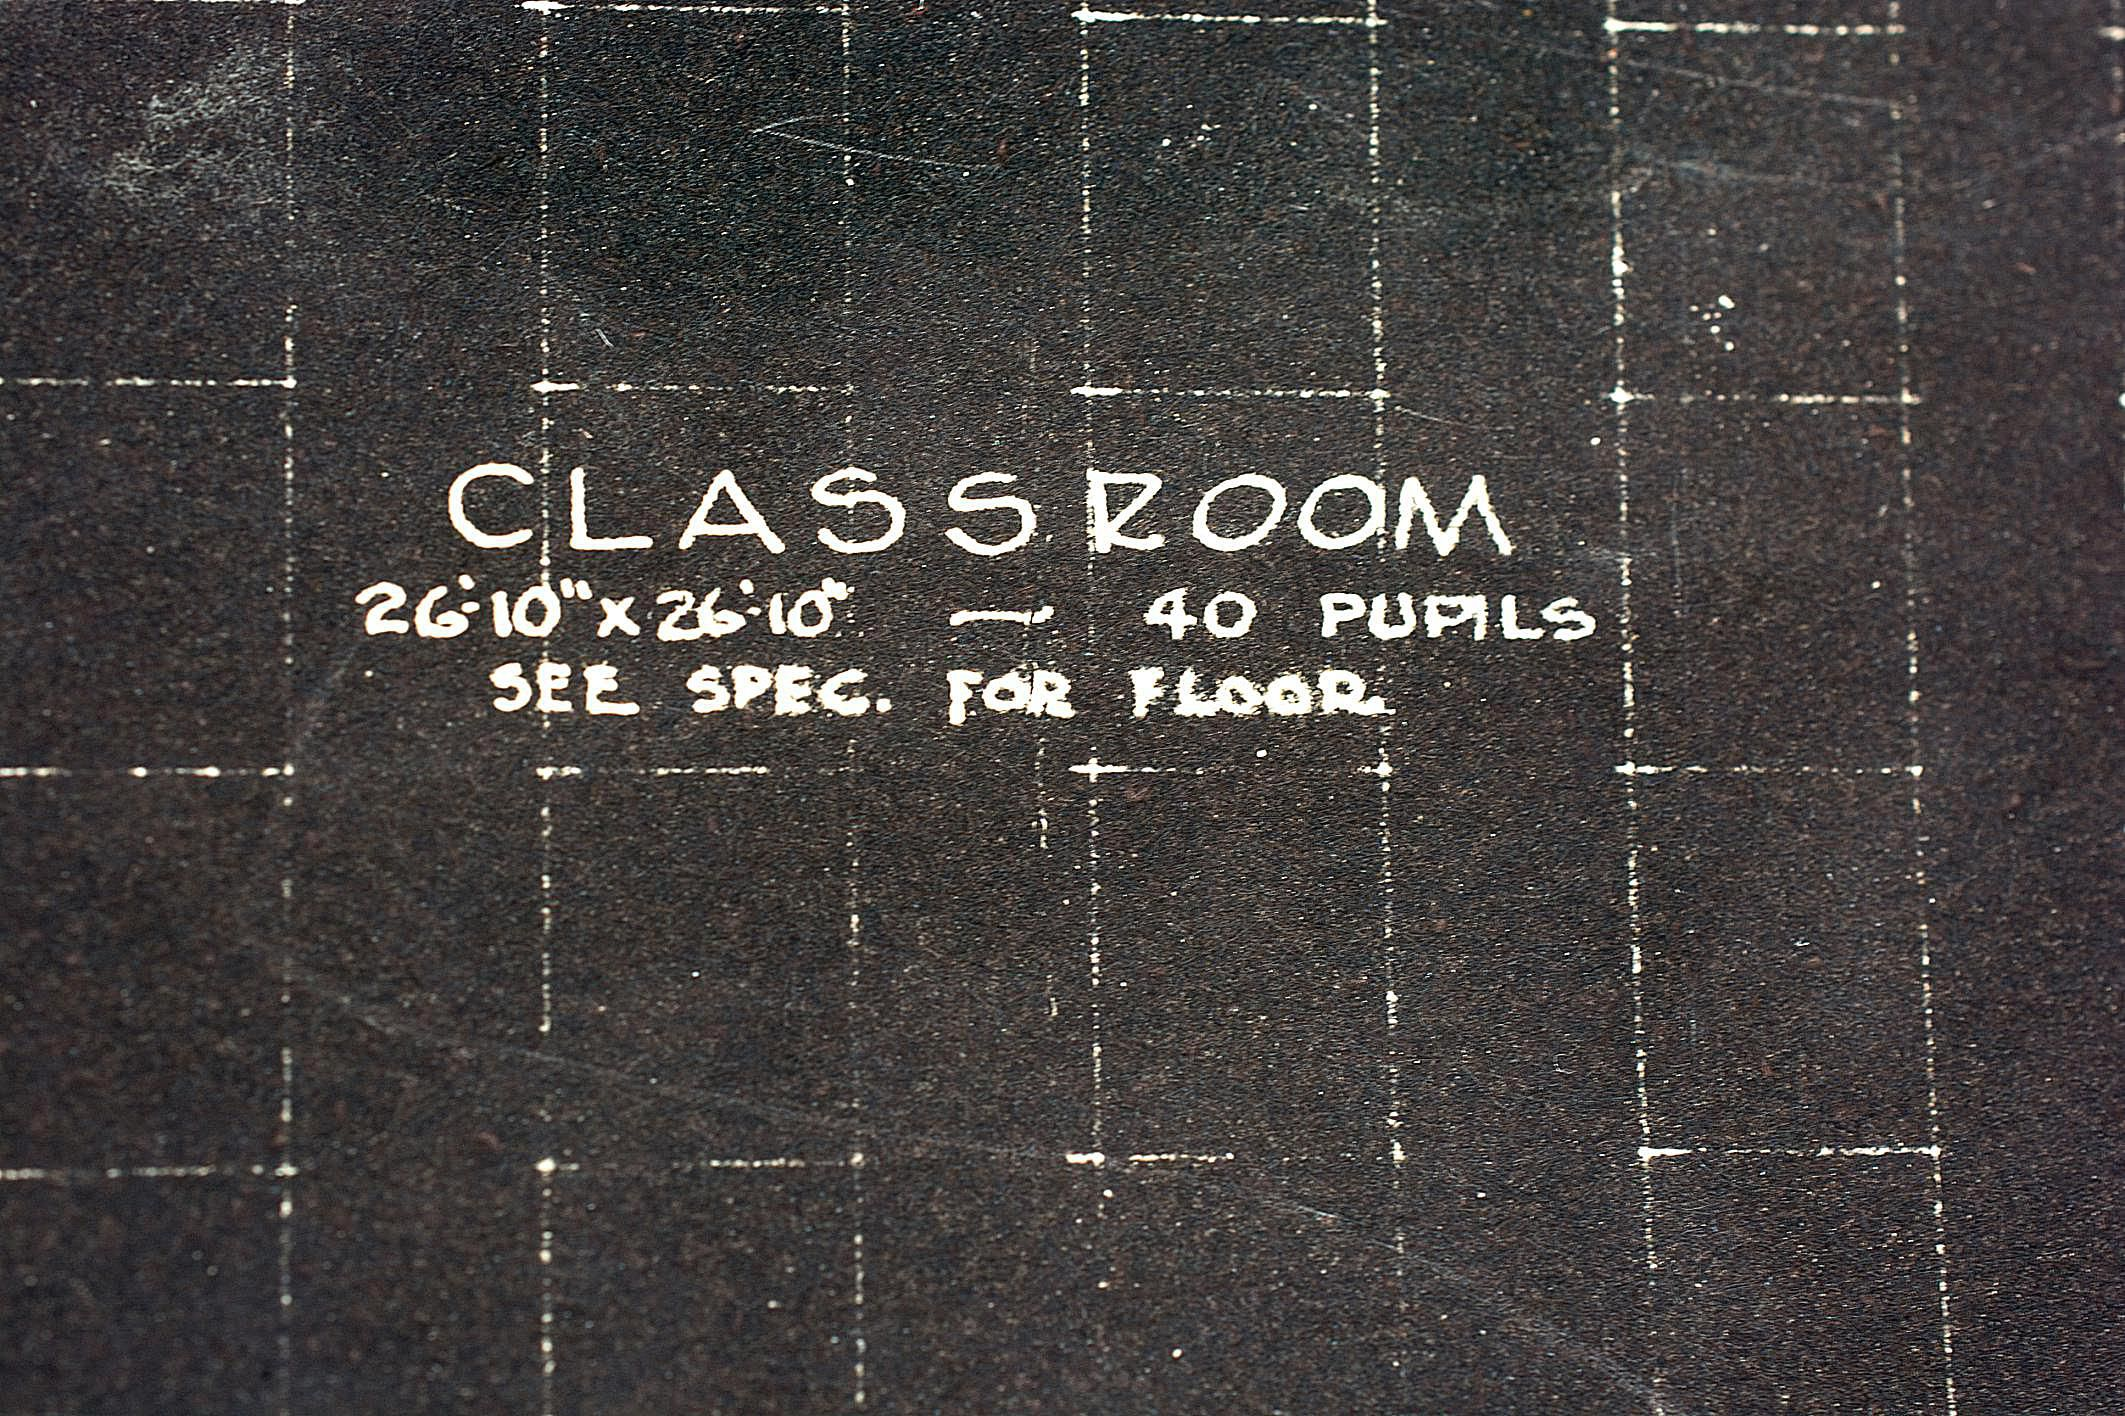 Classroom Layout in blueprint